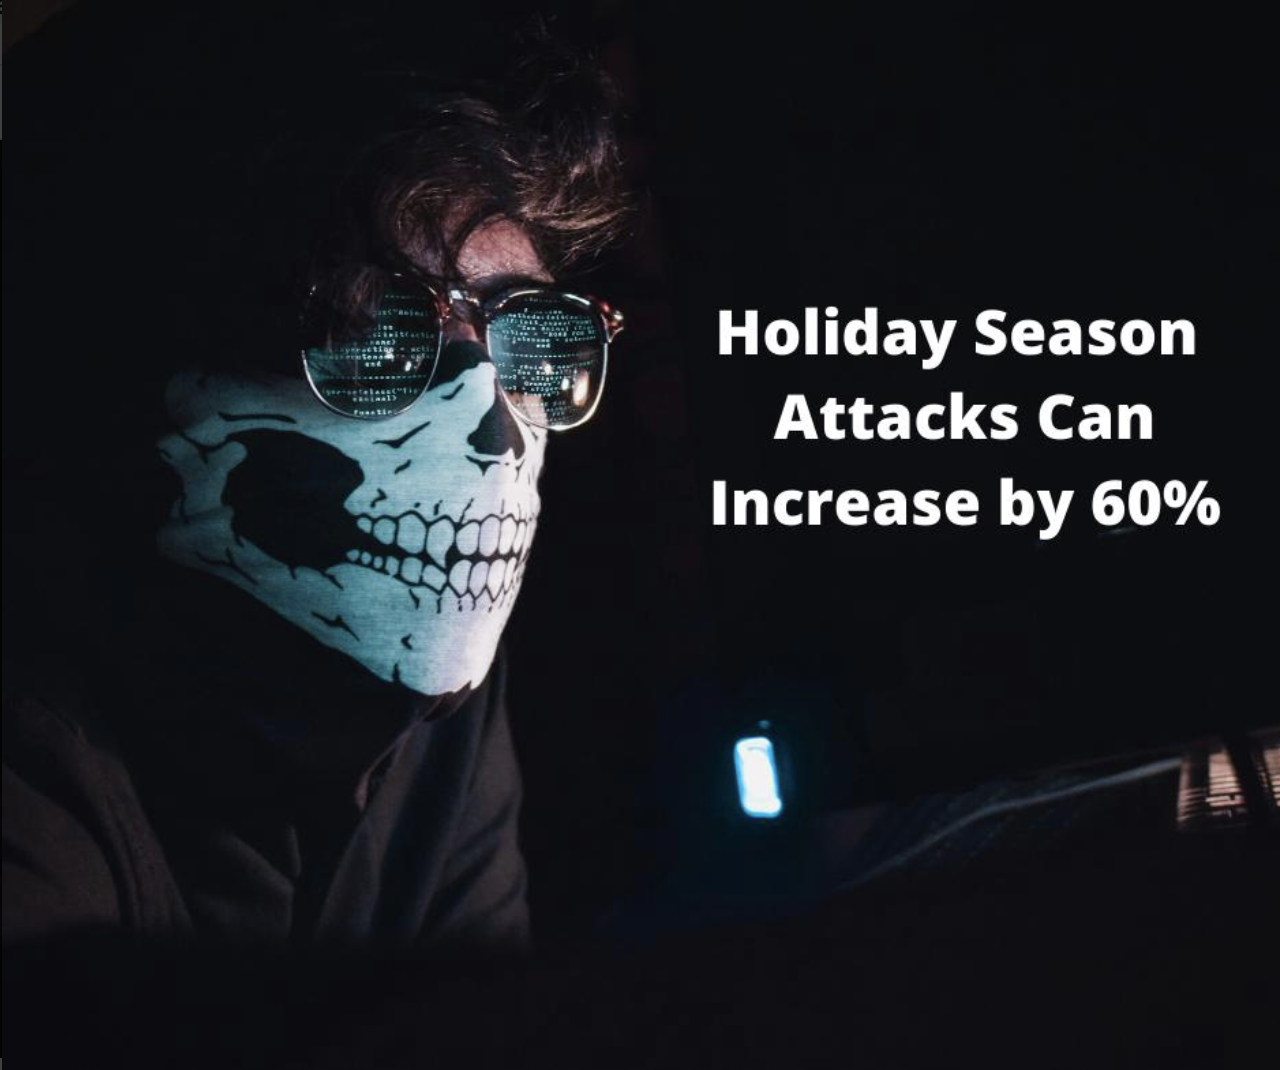 Did you know cyber attacks can increase by 60% during the holiday season?